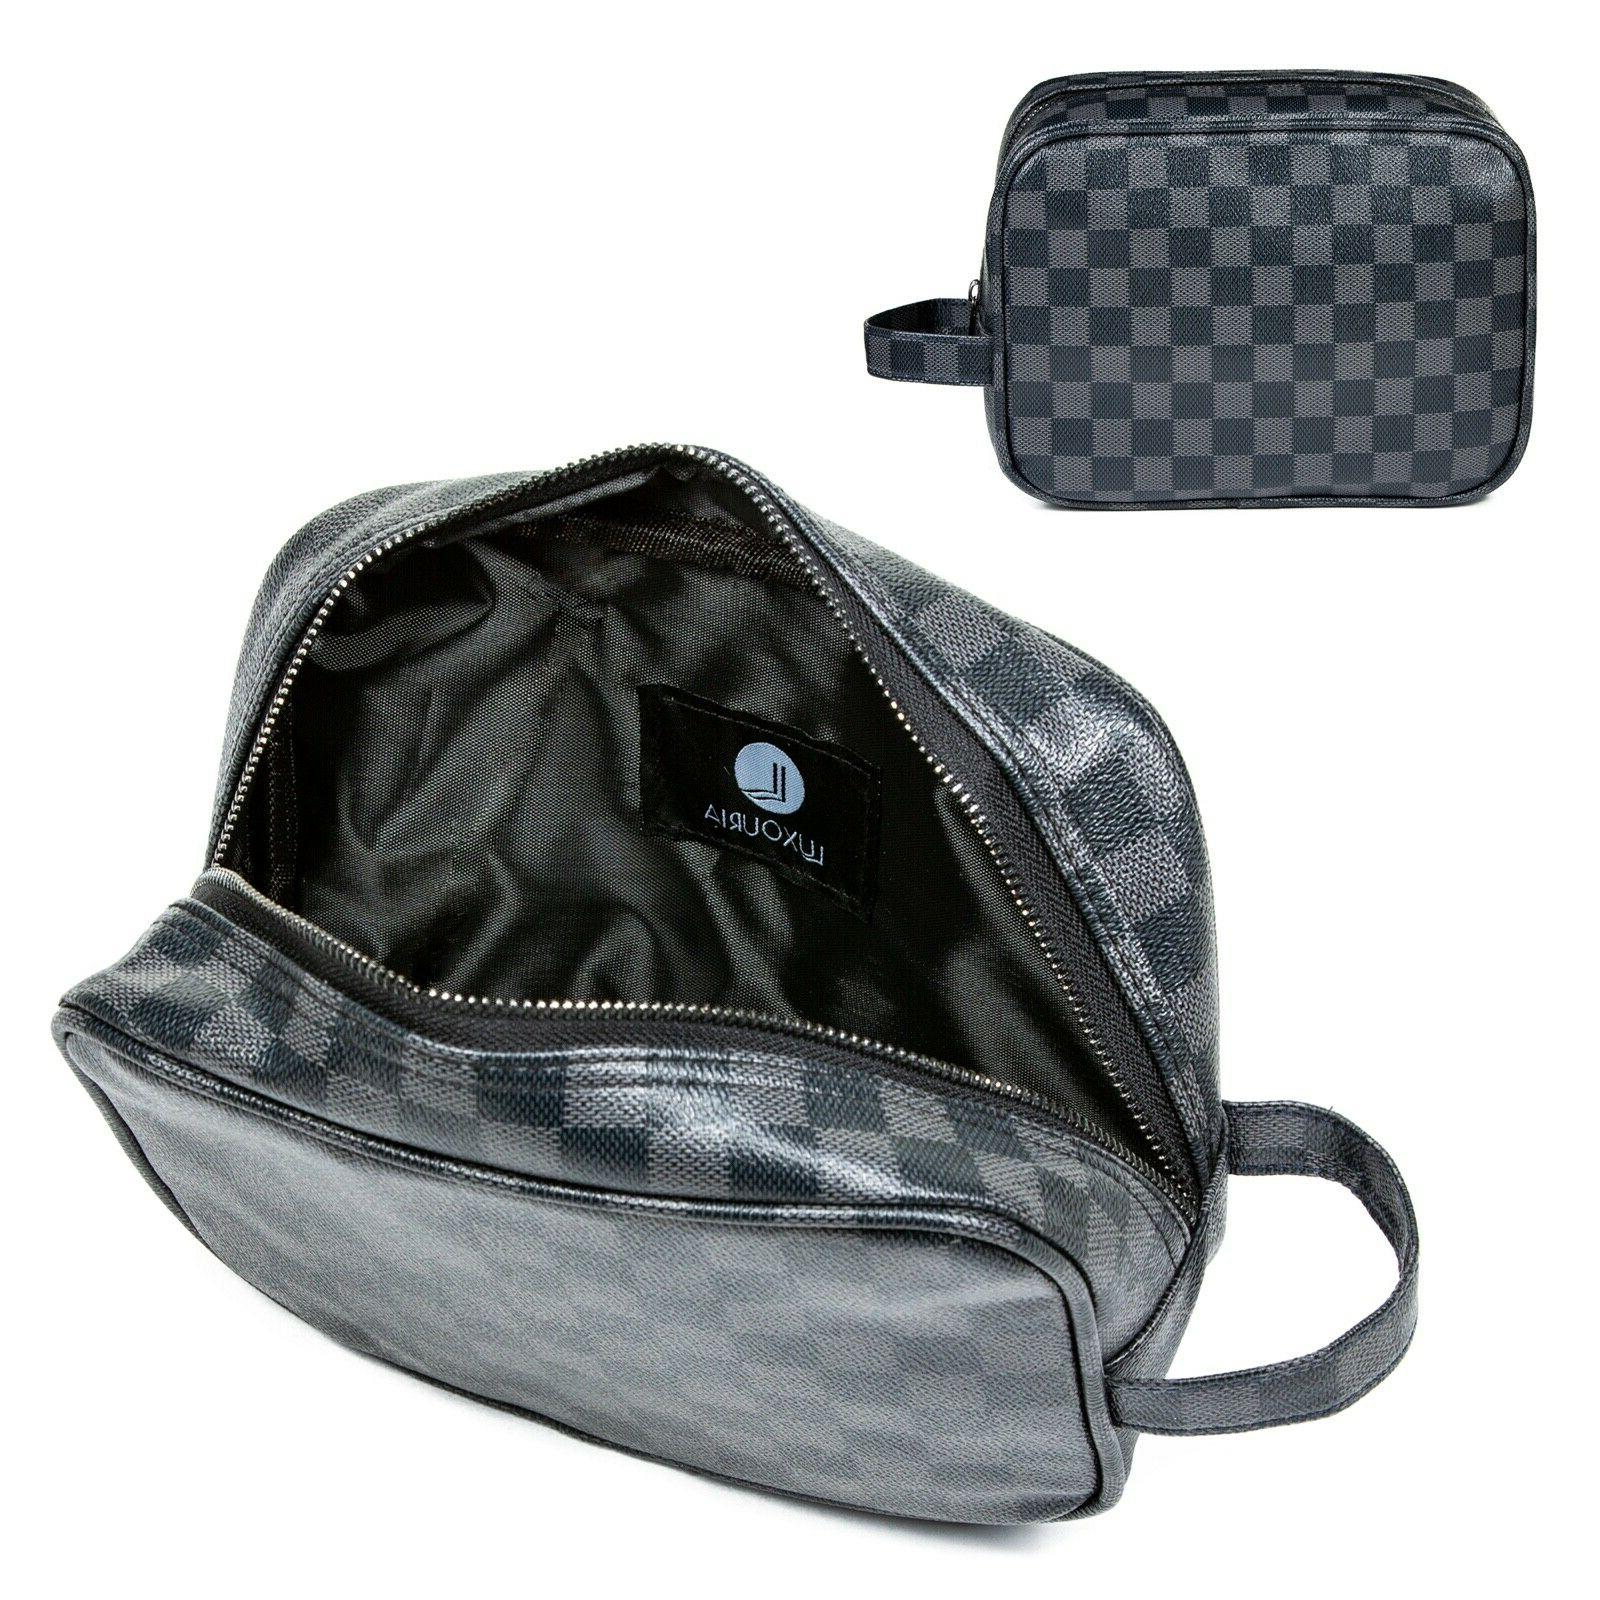 LUXOURIA Checkered Makeup Leather Pouch